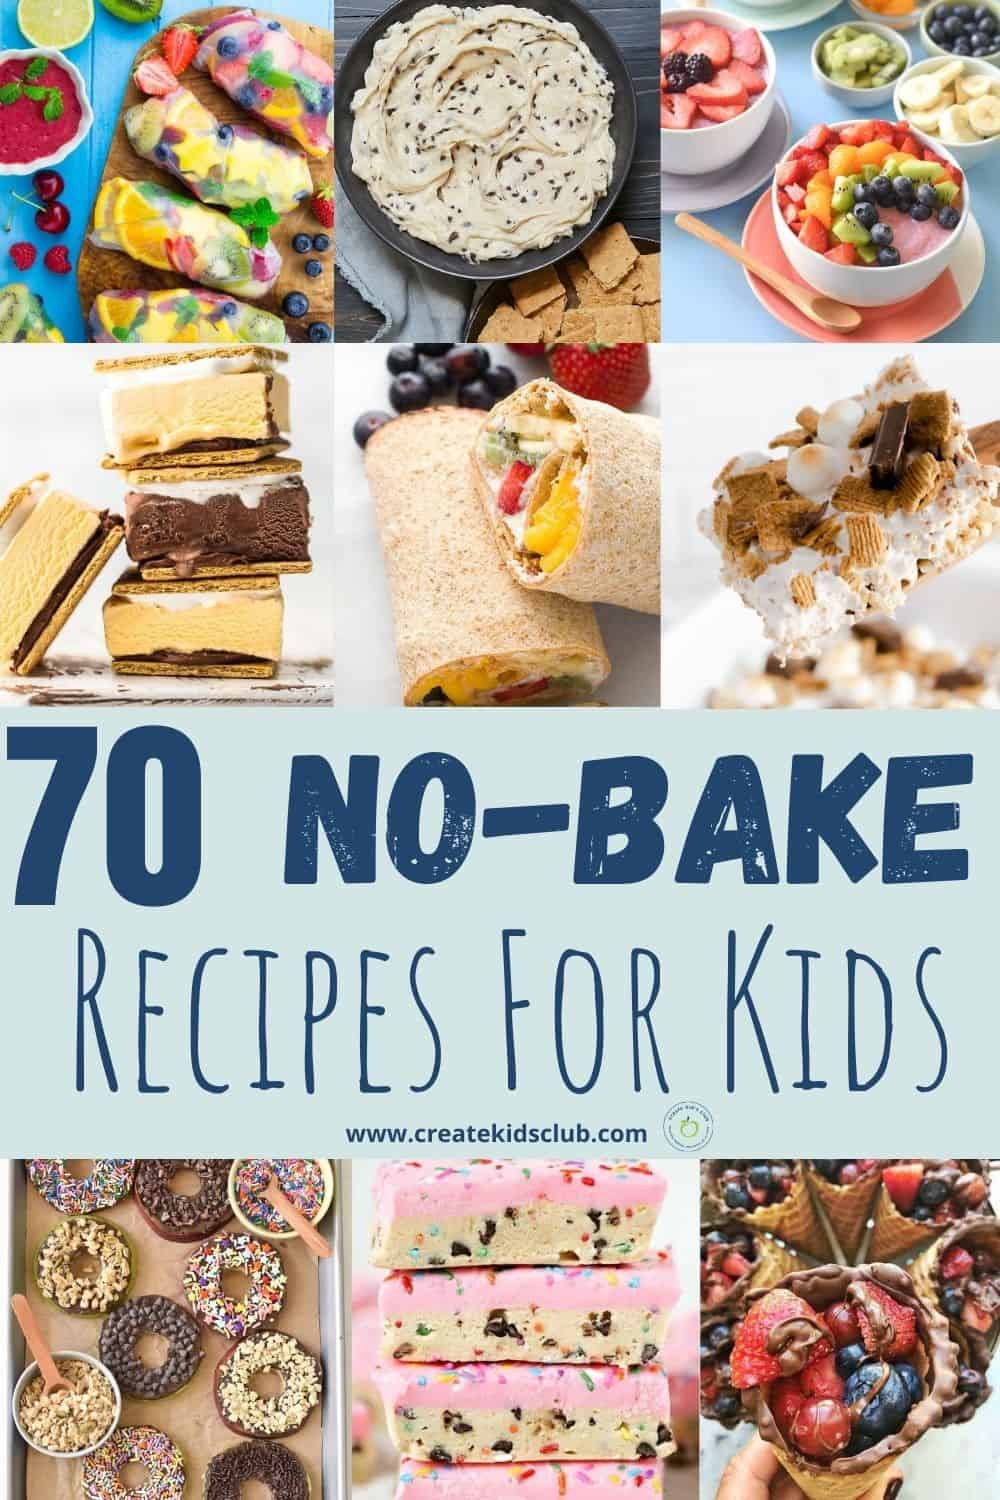 A variety of no bake recipes for kids.